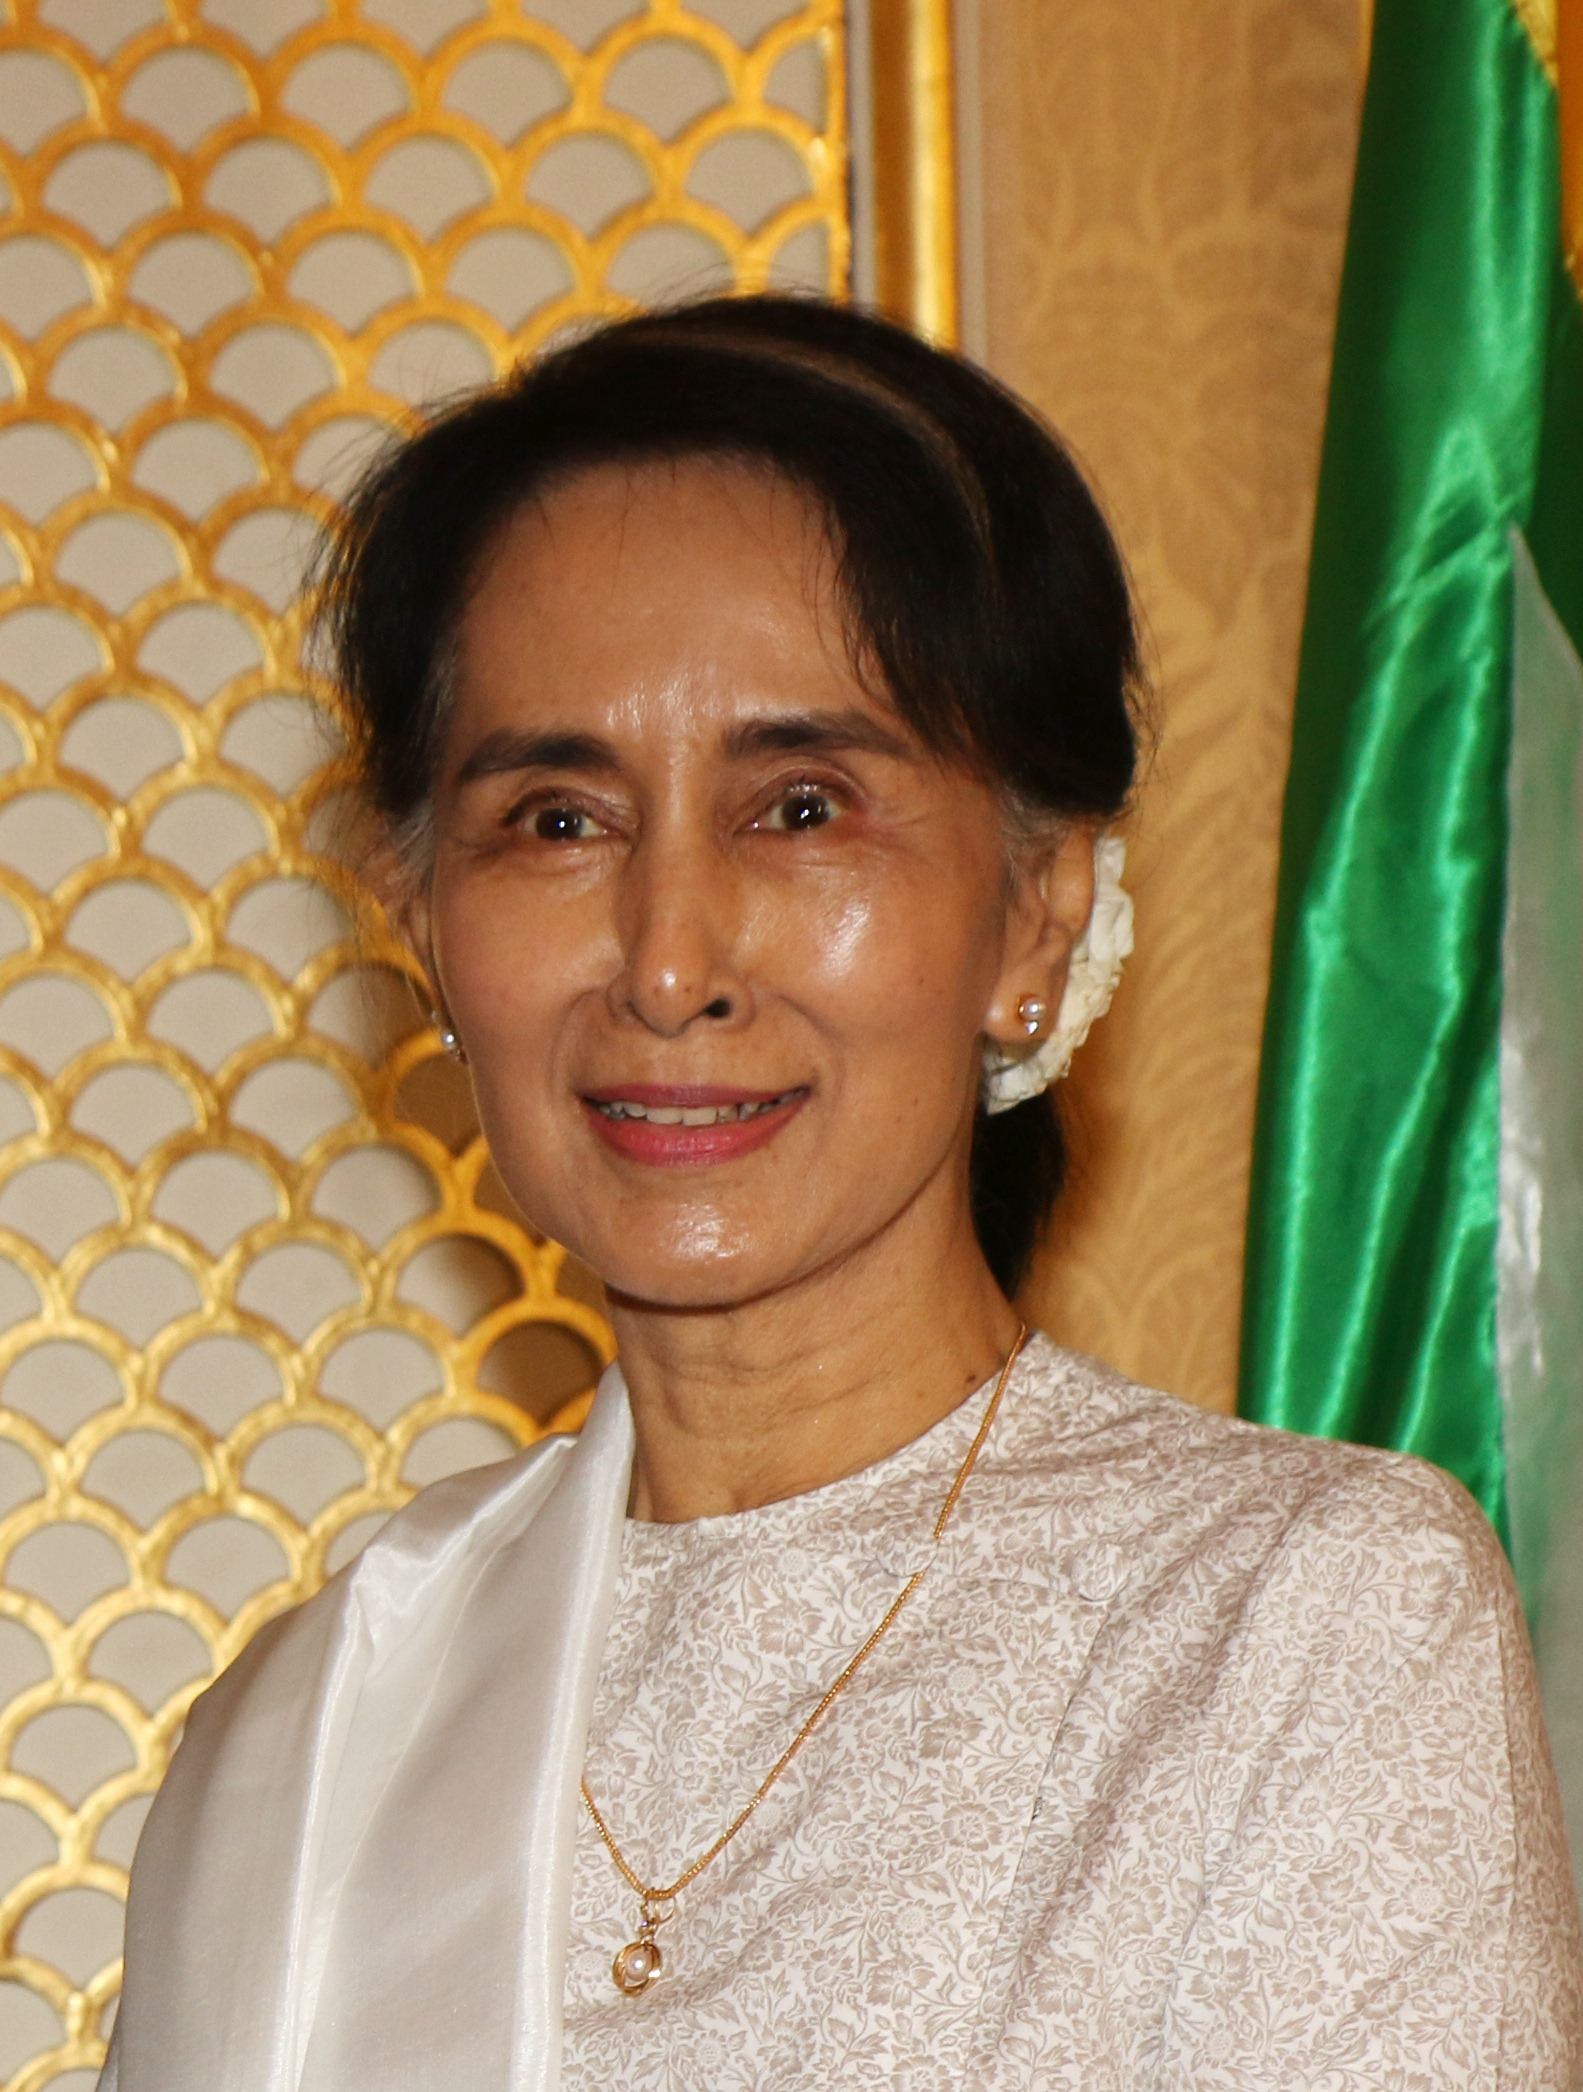 Aung san biography summary